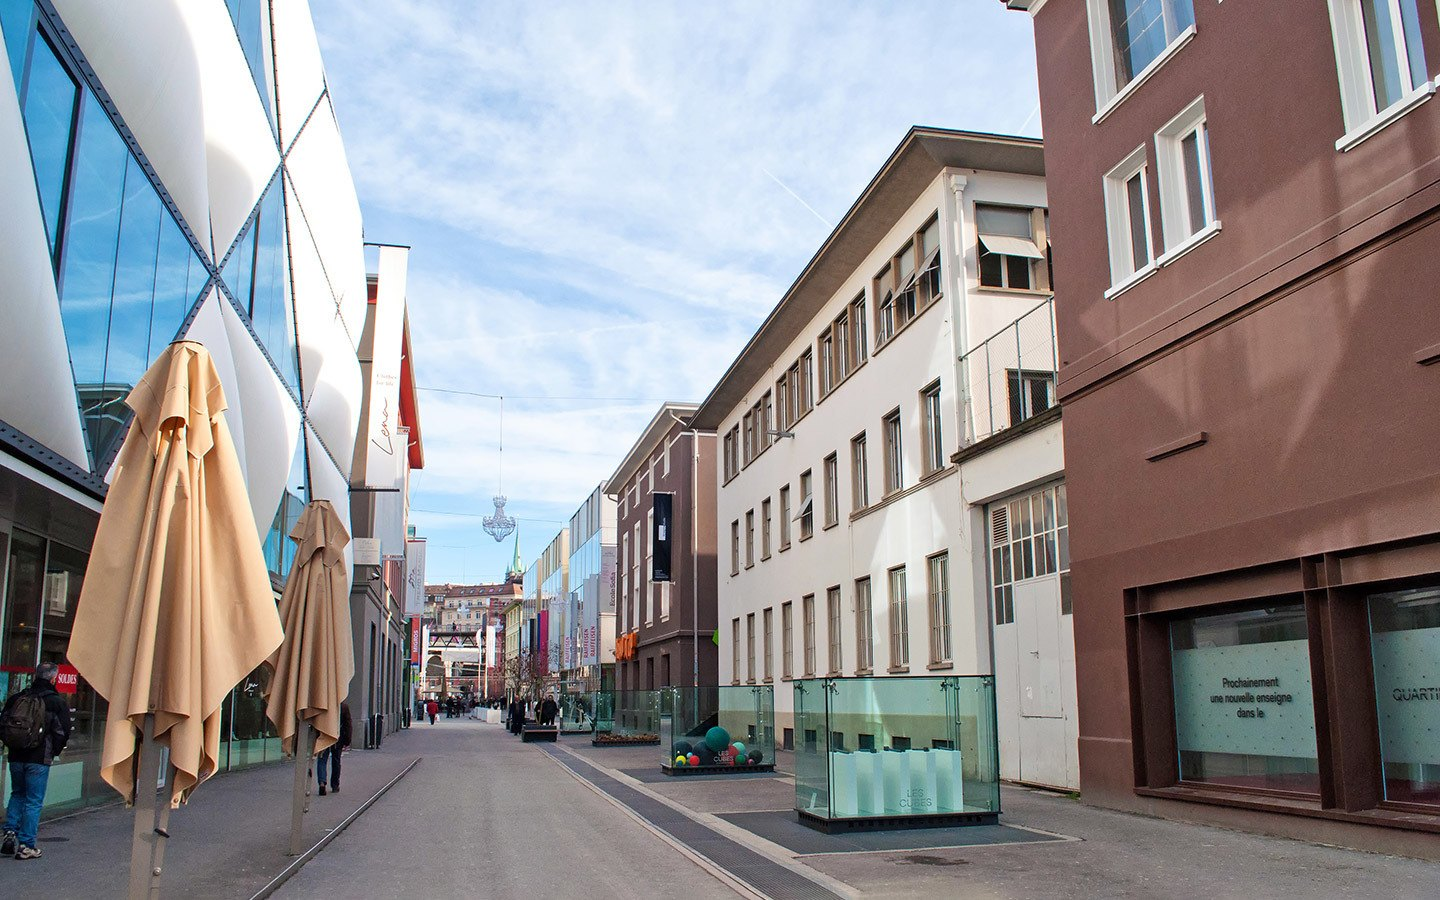 Bars and galleries in the Flon district of Lausanne